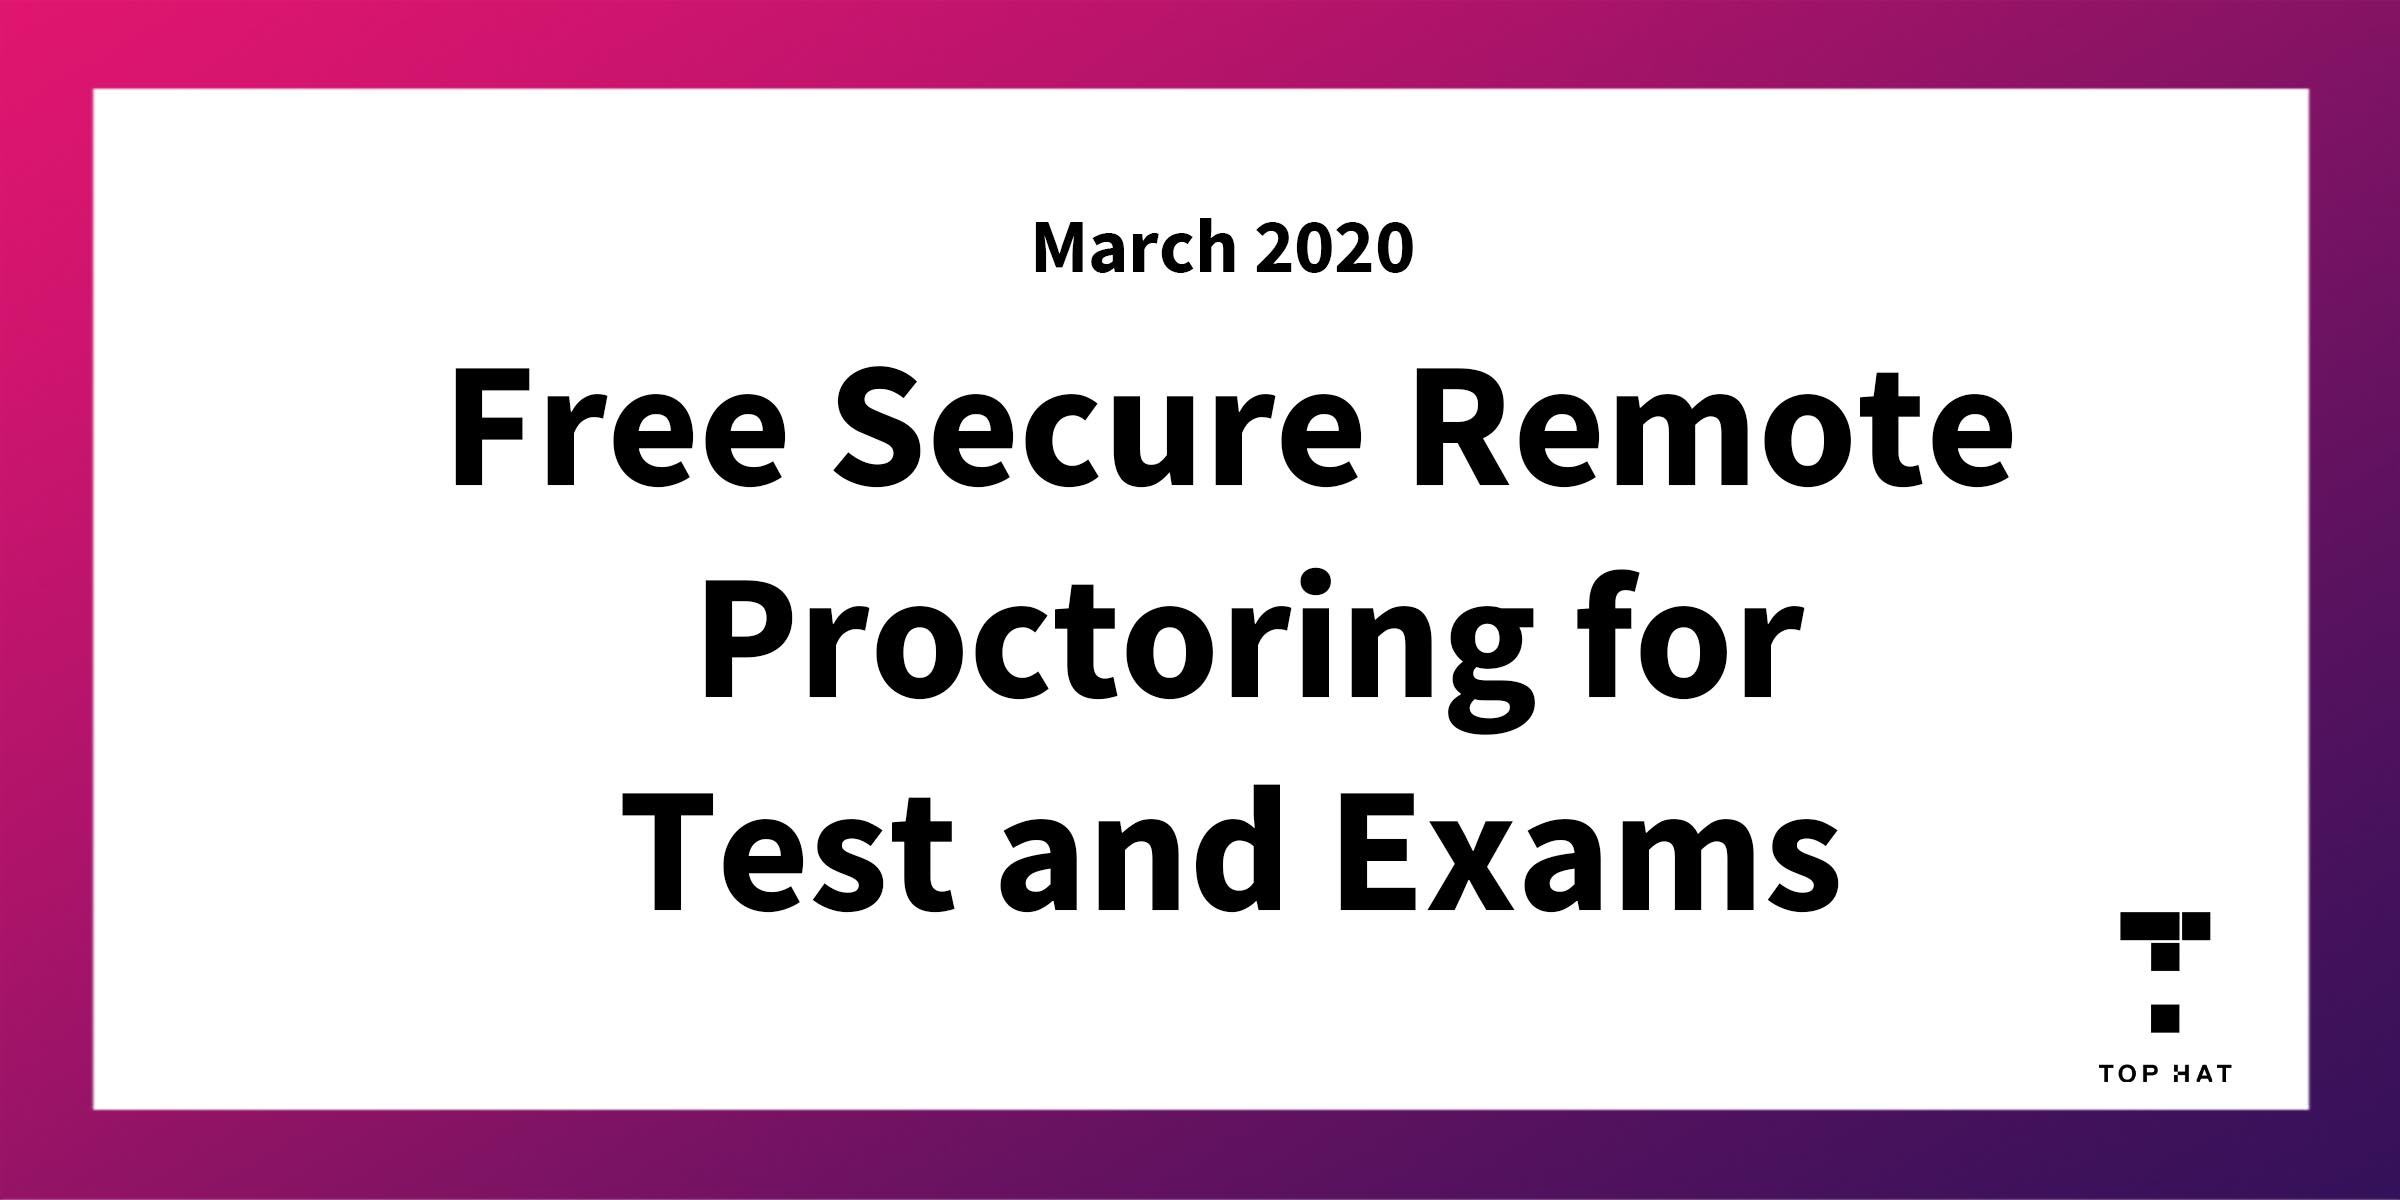 Top Hat Announces Free Secure Remote Proctoring for Tests and Exams